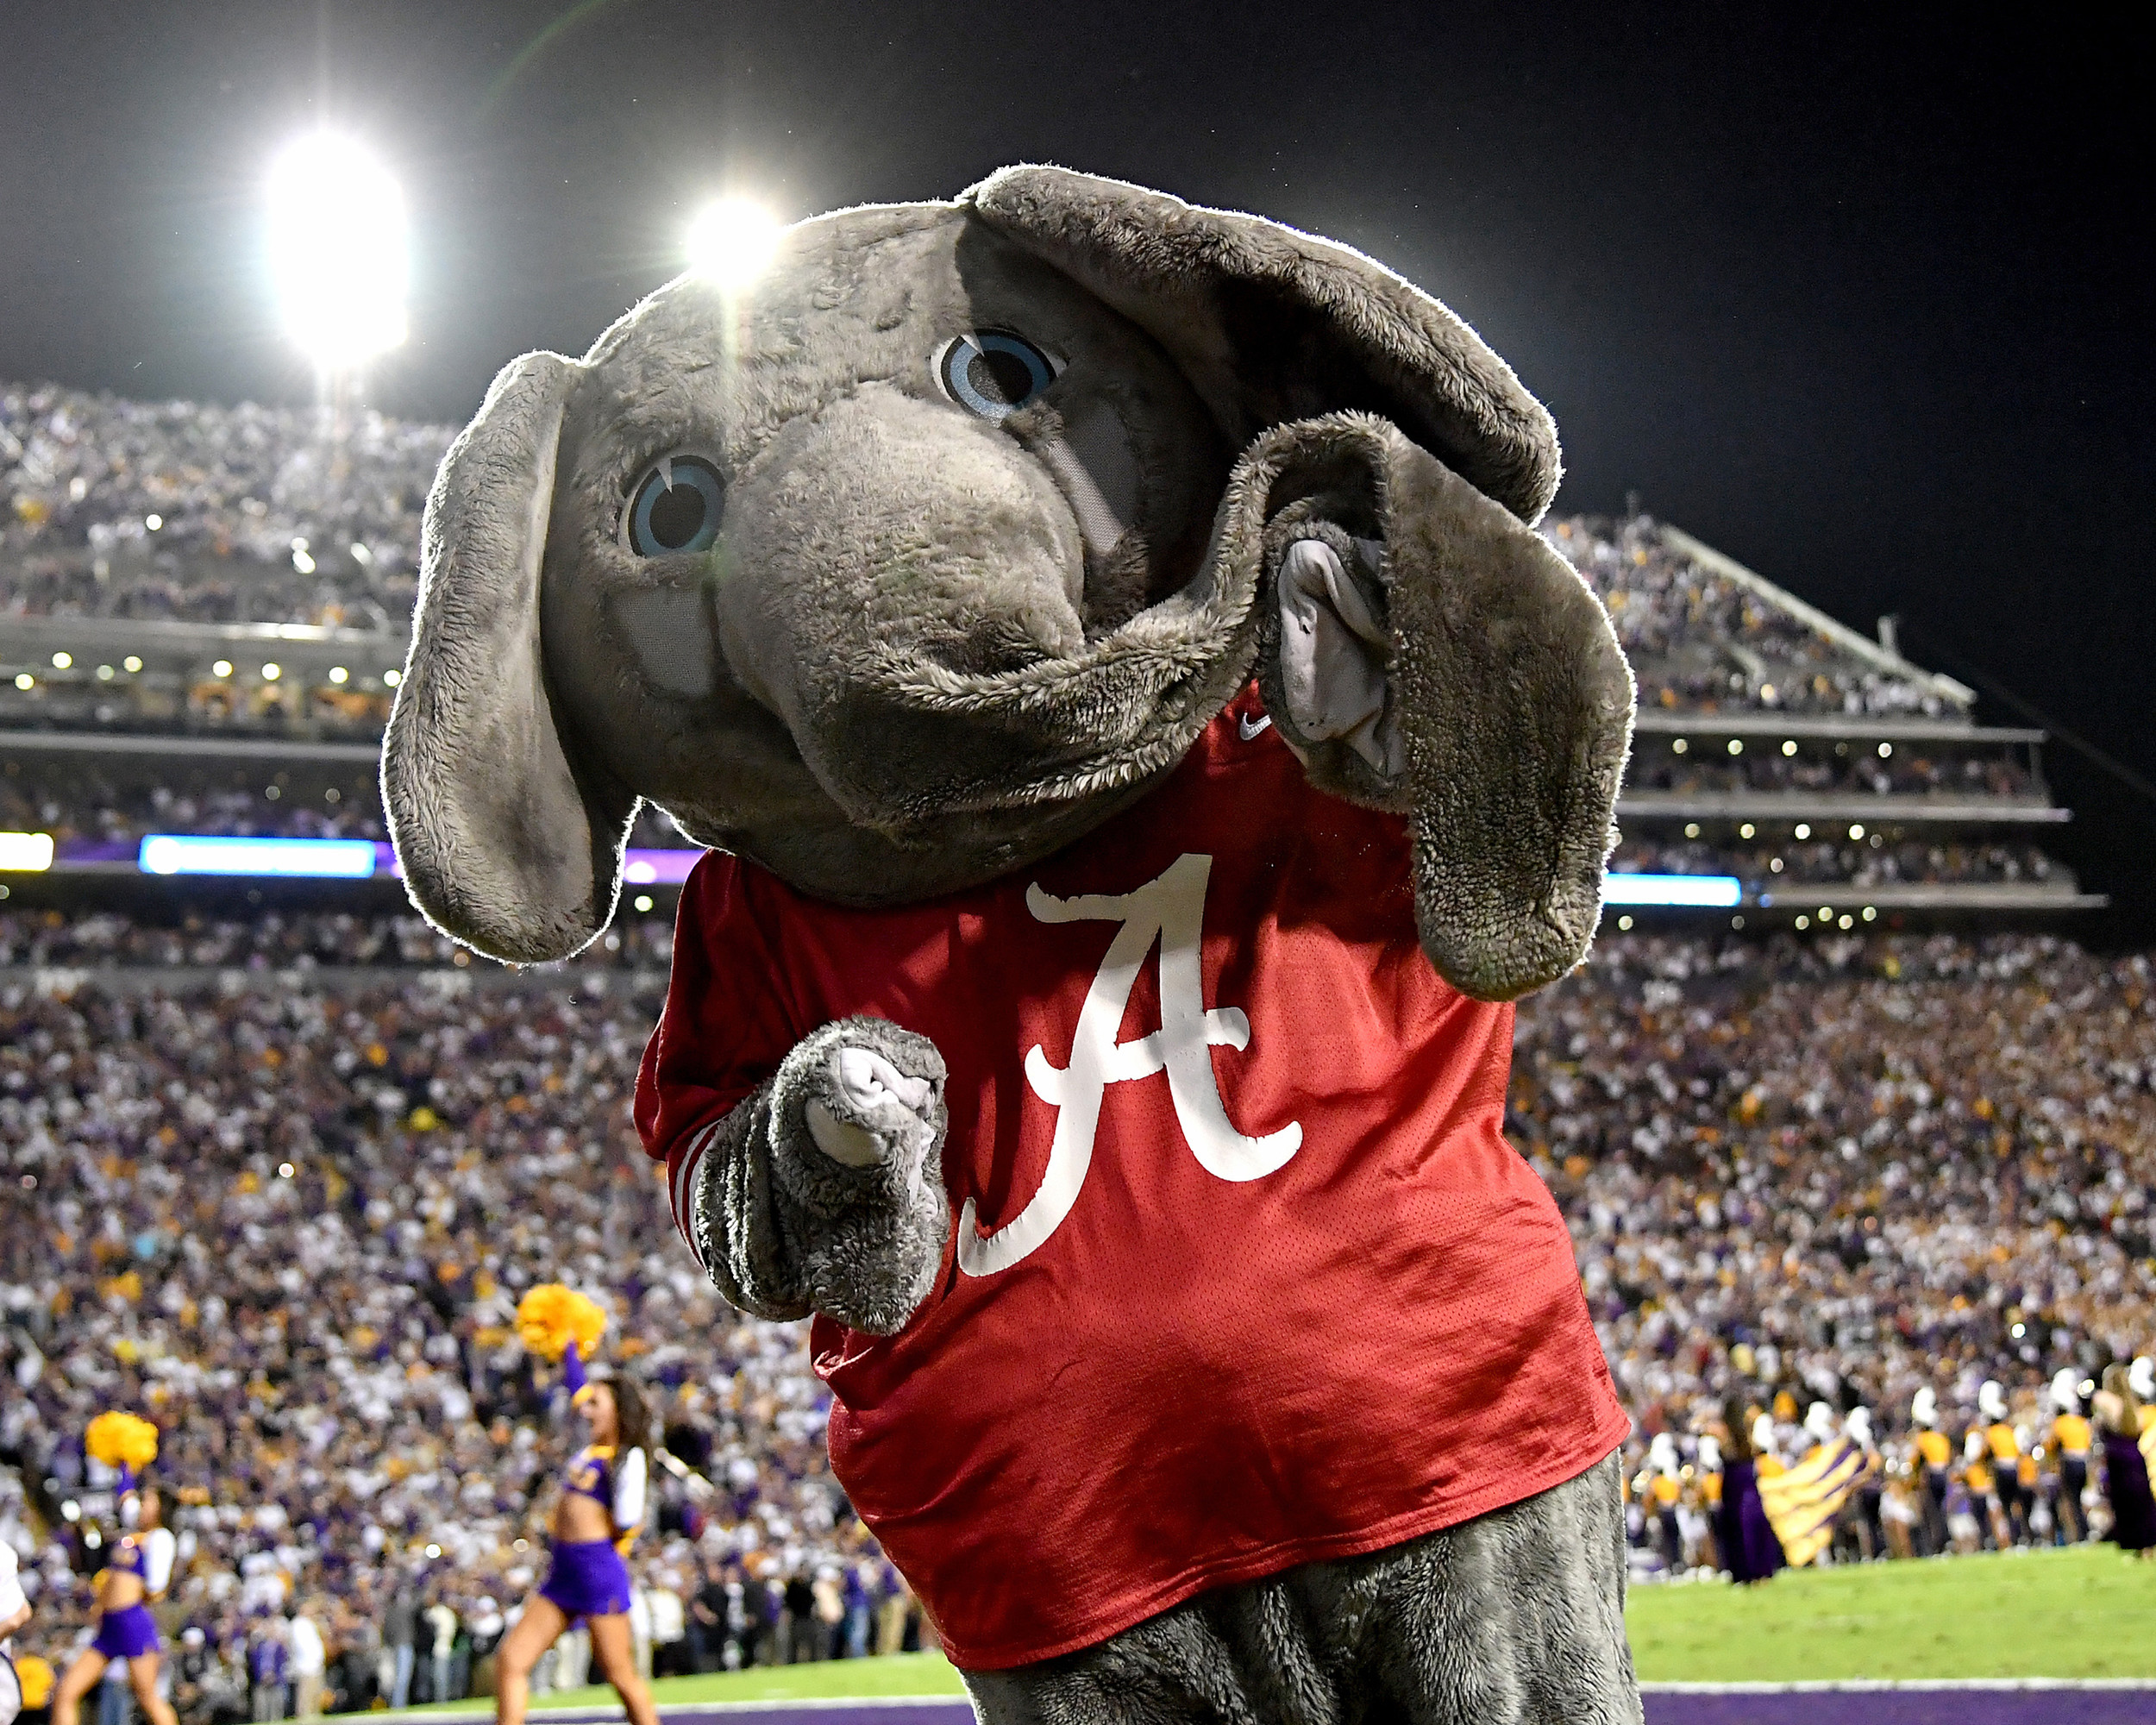 Big Al is seen during the first half of an NCAA football game between the Alabama Crimson Tide and the LSU Tigers Saturday, November 3, 2018, at Tiger Stadium in Baton Rouge, La. Alabama wins 29-0. (Photo by Lee Walls)